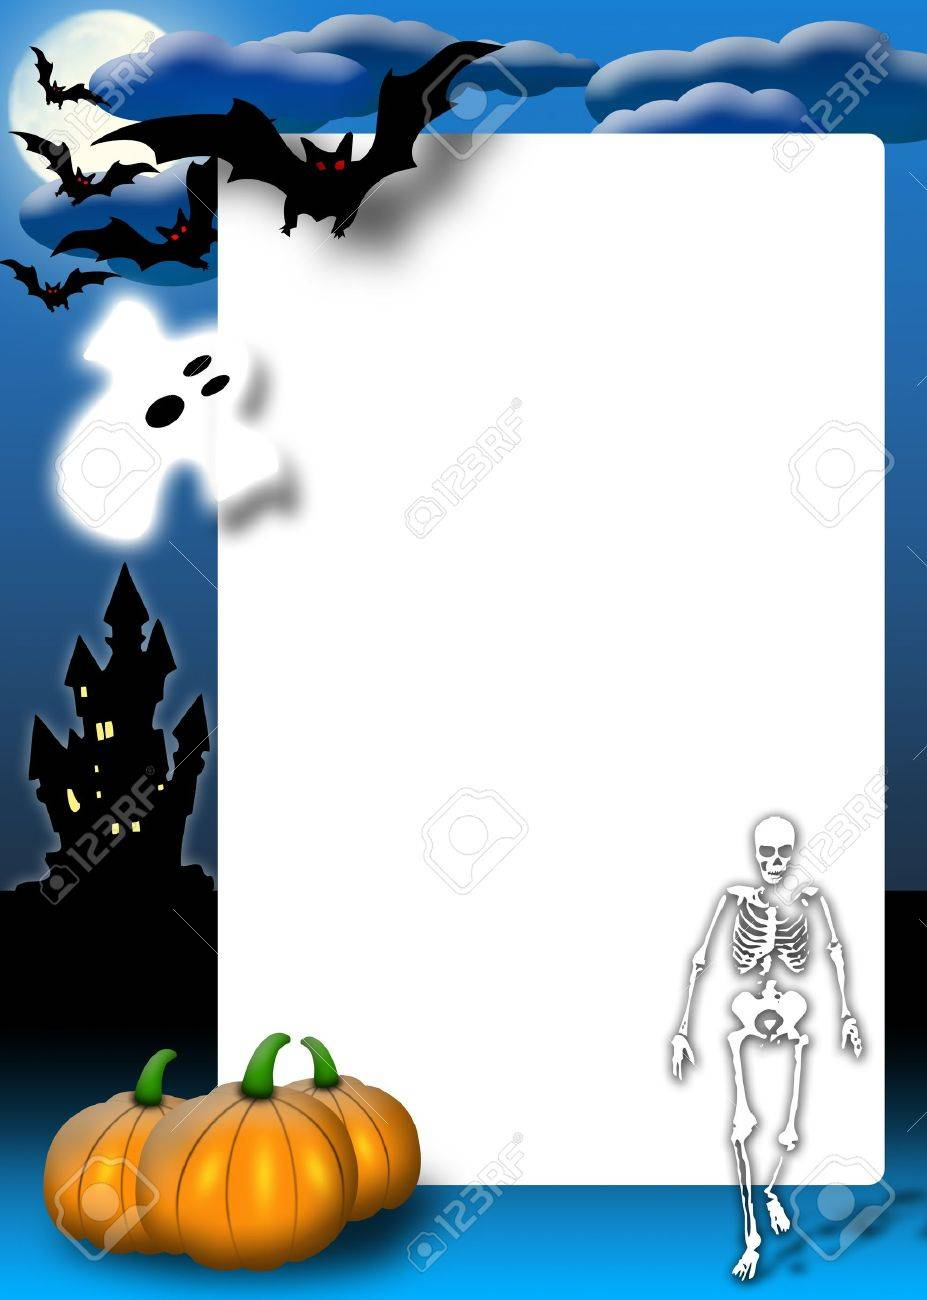 halloween invitation card for the party or background with